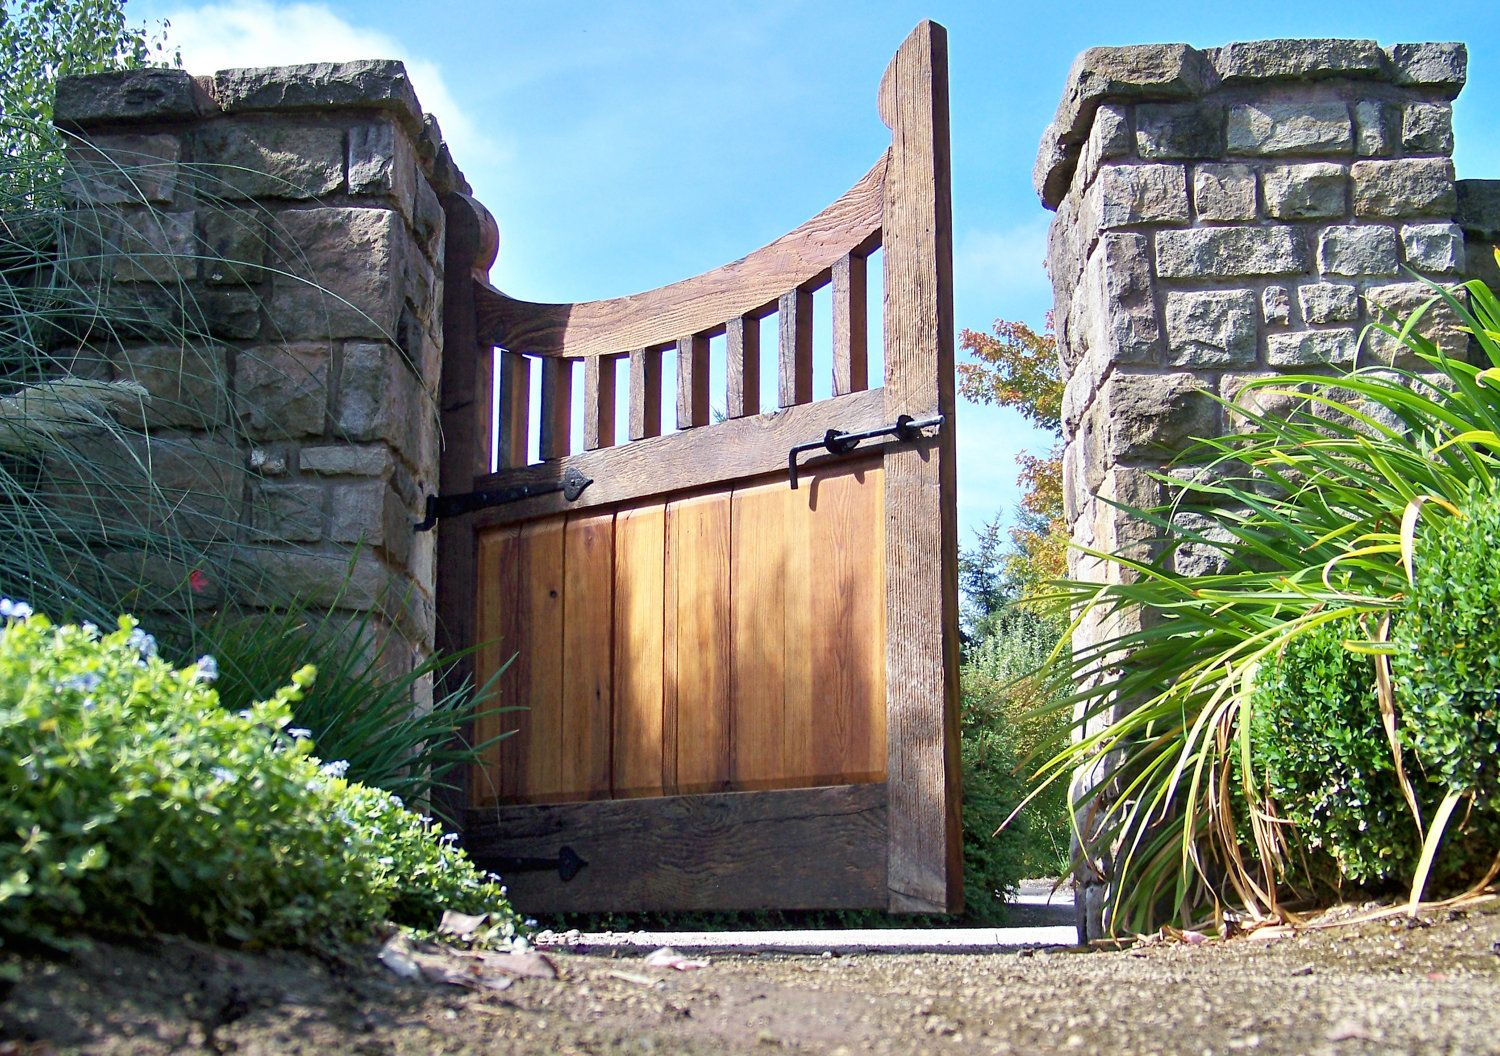 Wooden garden gates for sale - 17 Best Images About Wood Gates On Pinterest Rustic Wood Wooden Gates And Wood Gates